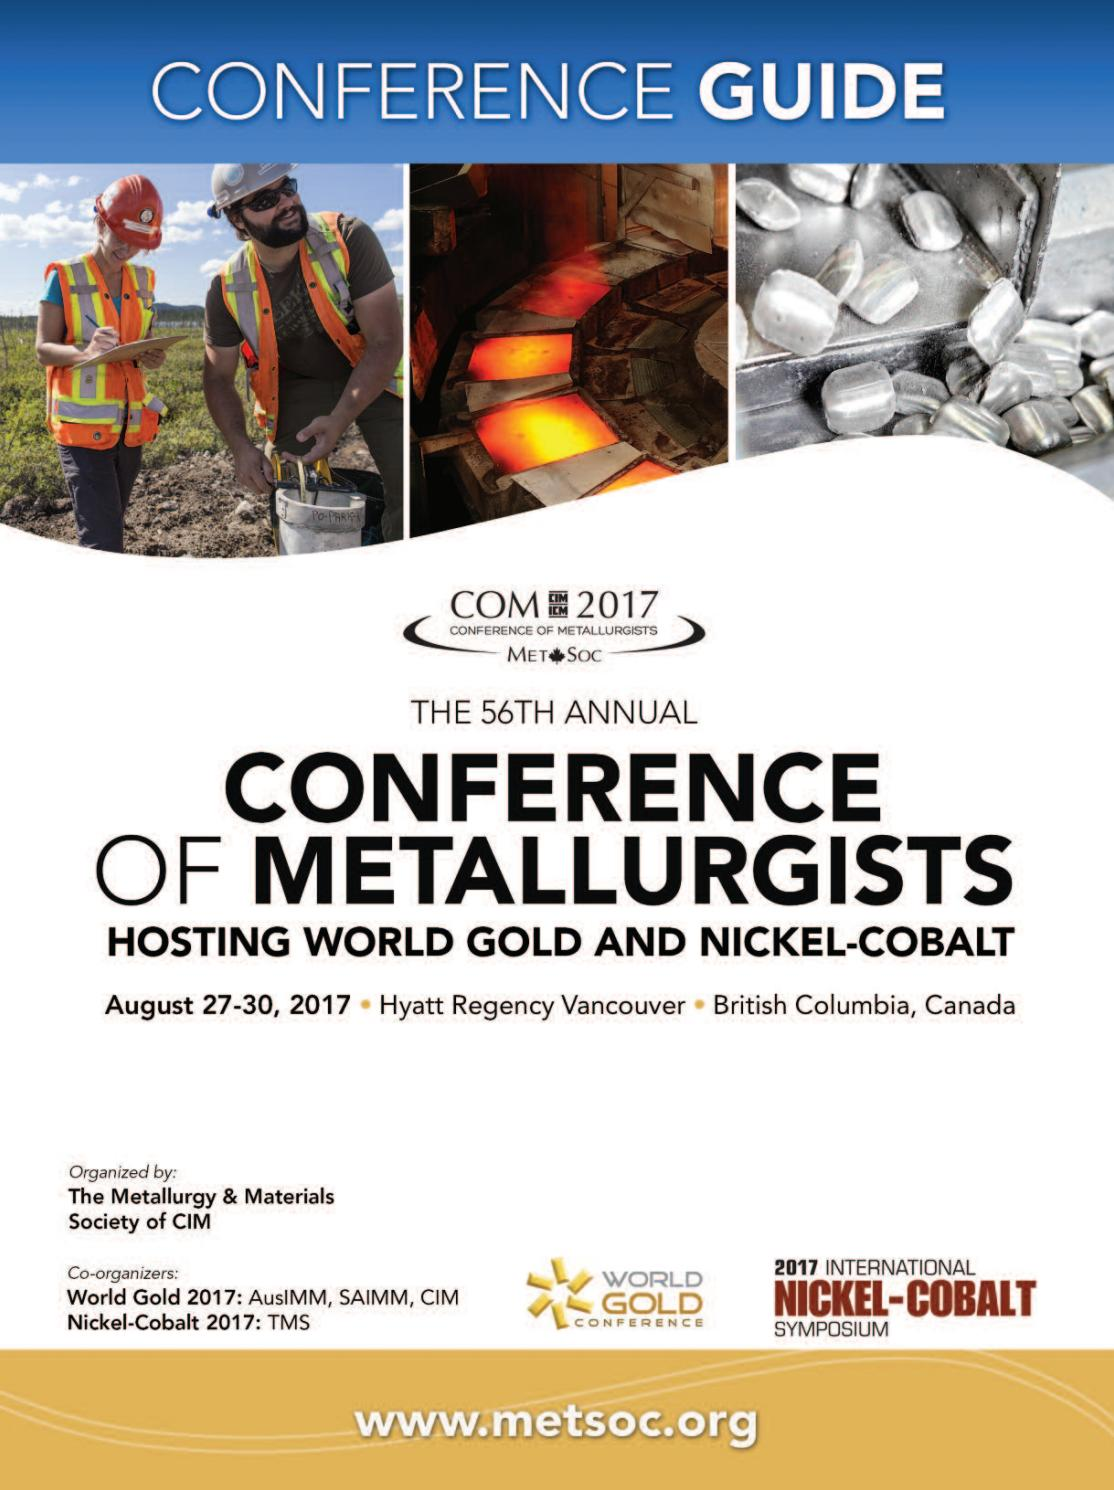 Holidays of the metallurgist - large-scale celebrations in gratitude for hard work 63